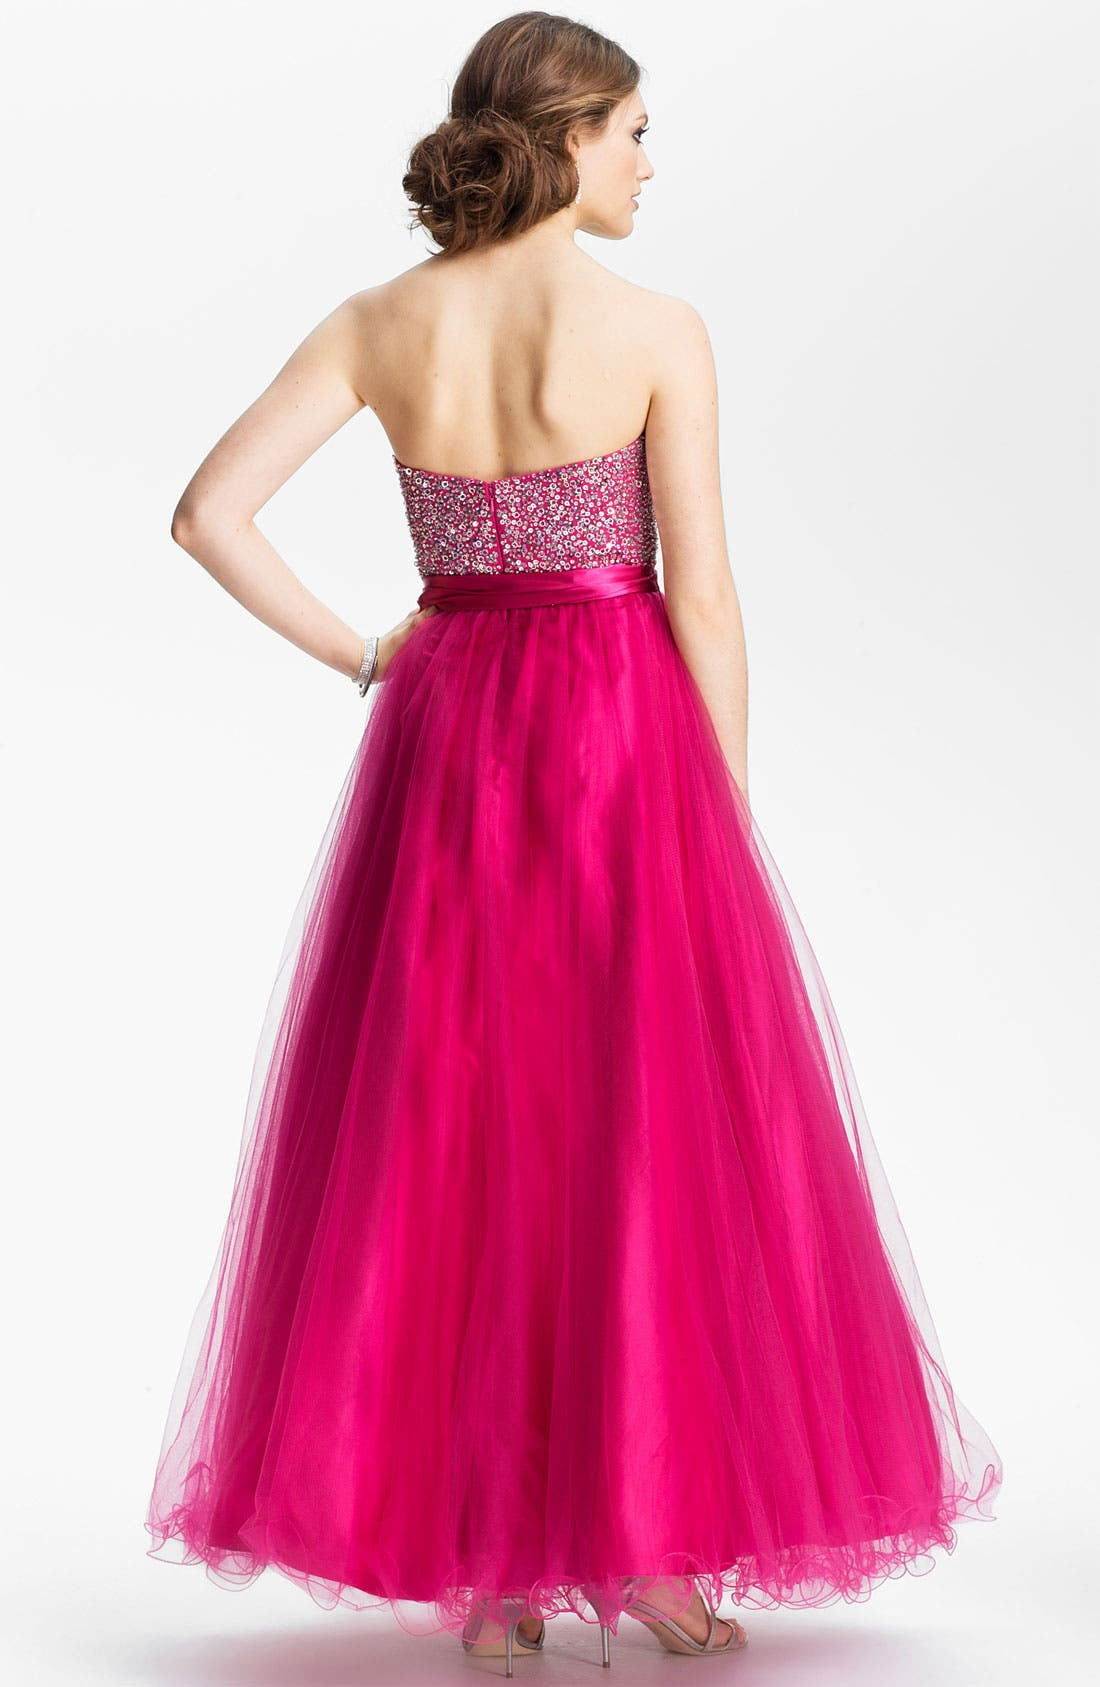 Embellished Tulle Ball Gown,                             Alternate thumbnail 2, color,                             670